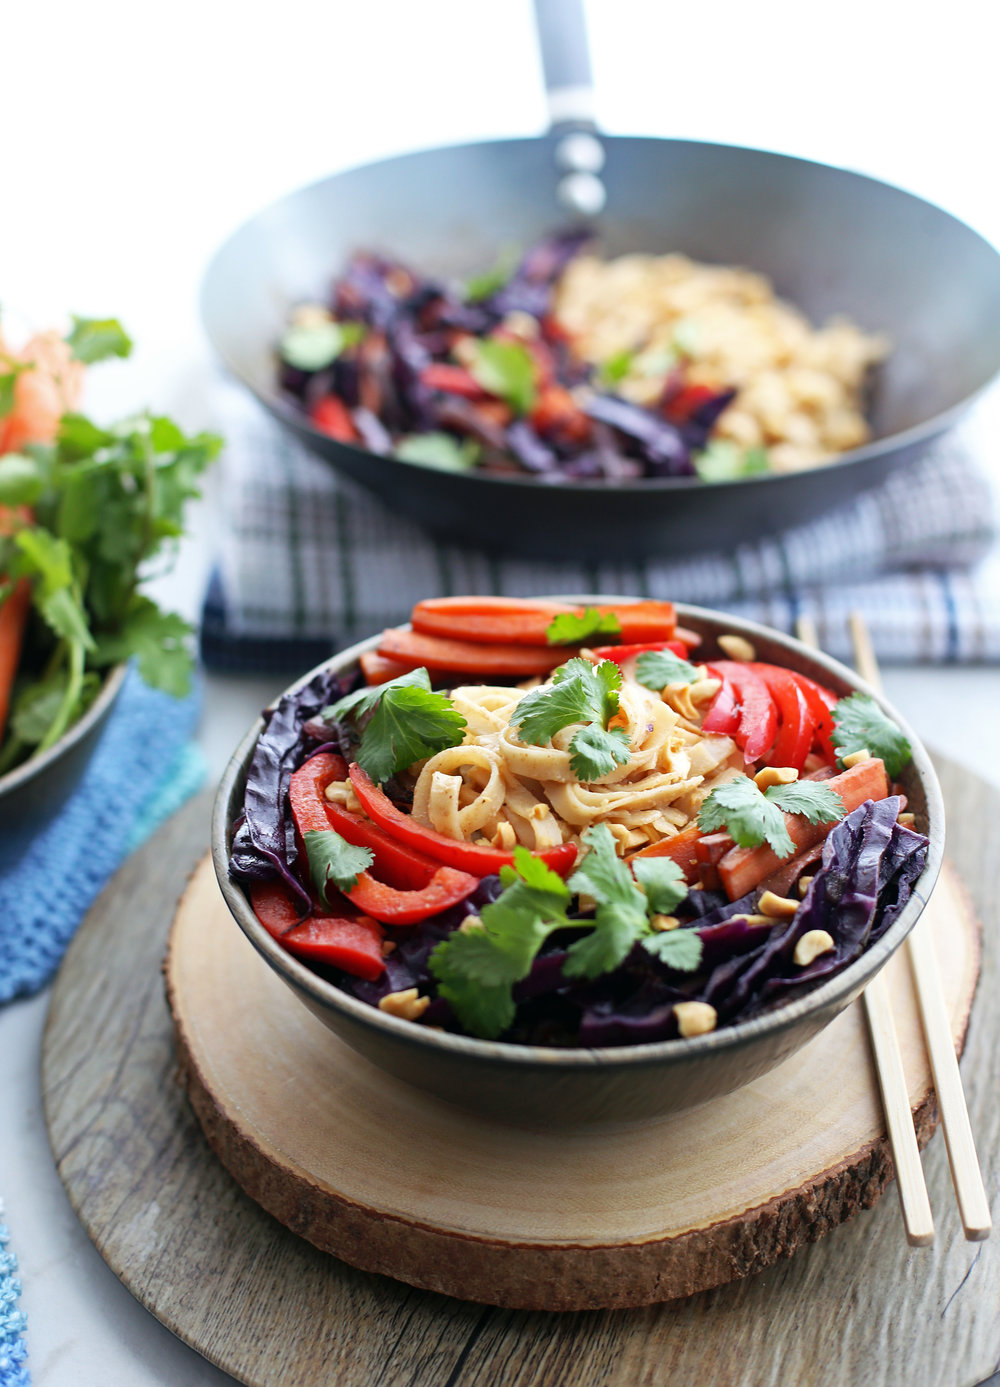 Stir-Fry Vegetables and Noodles with Peanut Sauce in a wooden bowl and in a wok behind it.